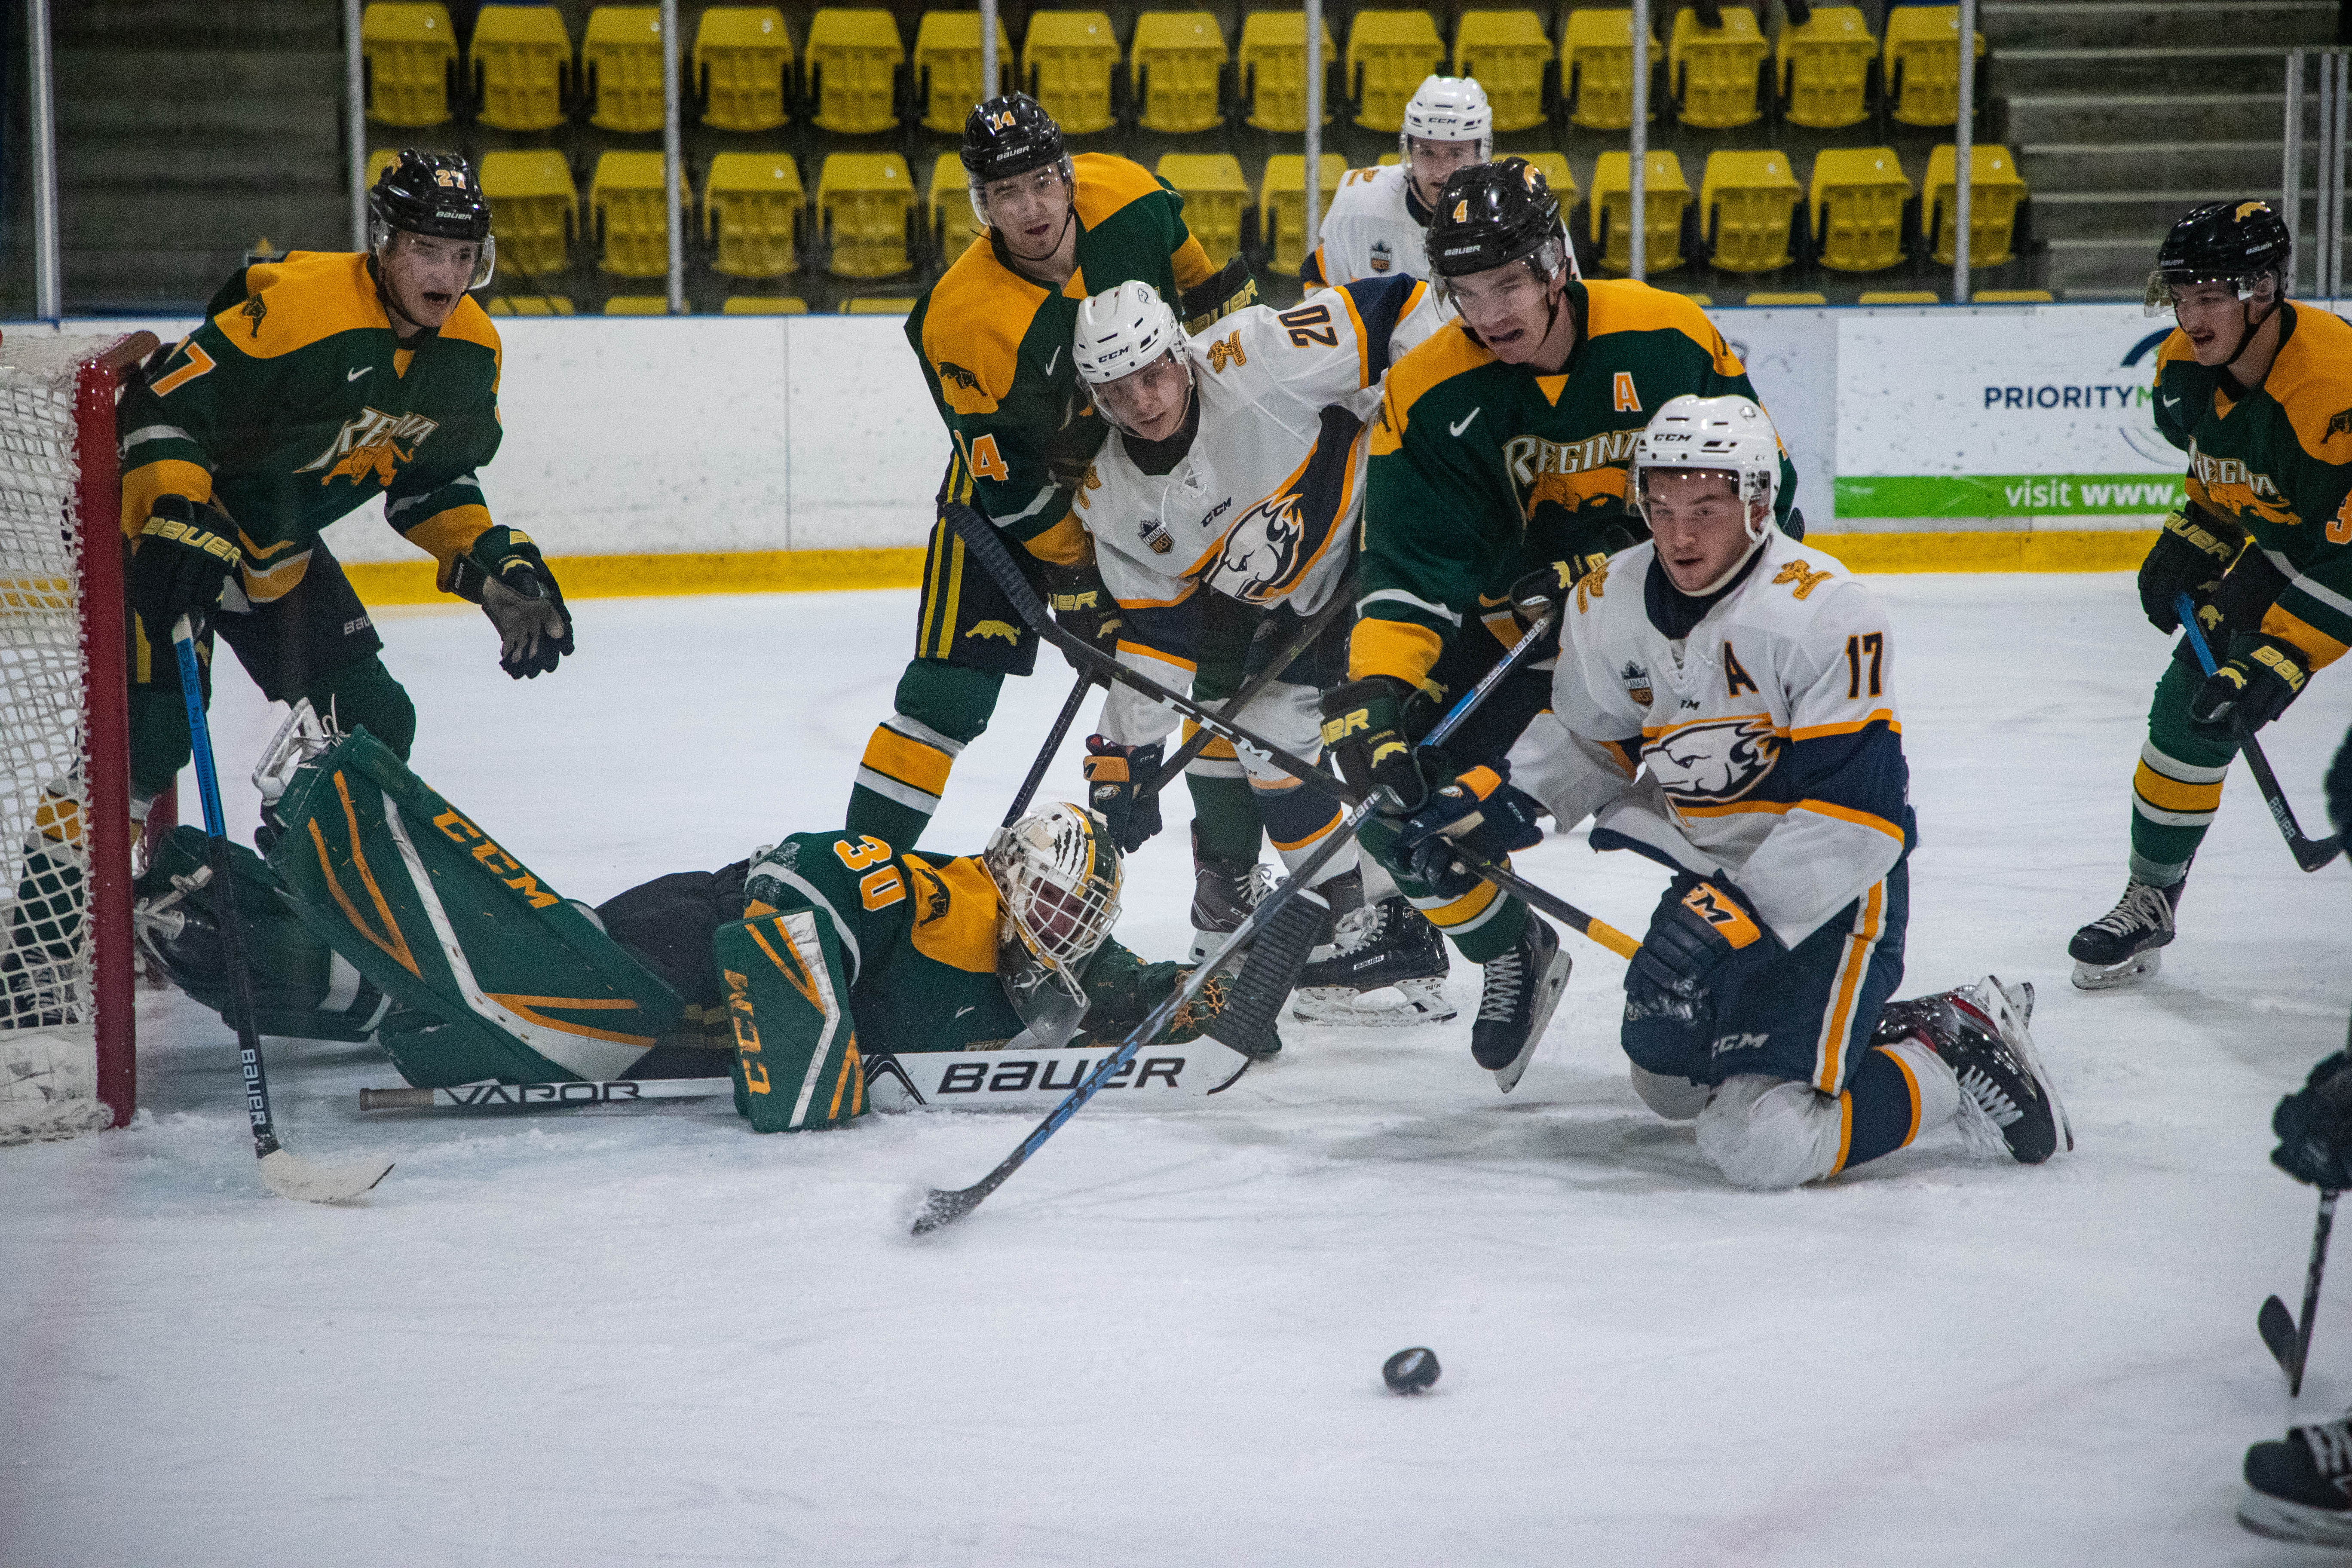 Players scramble for the puck in front of the Regina goal.